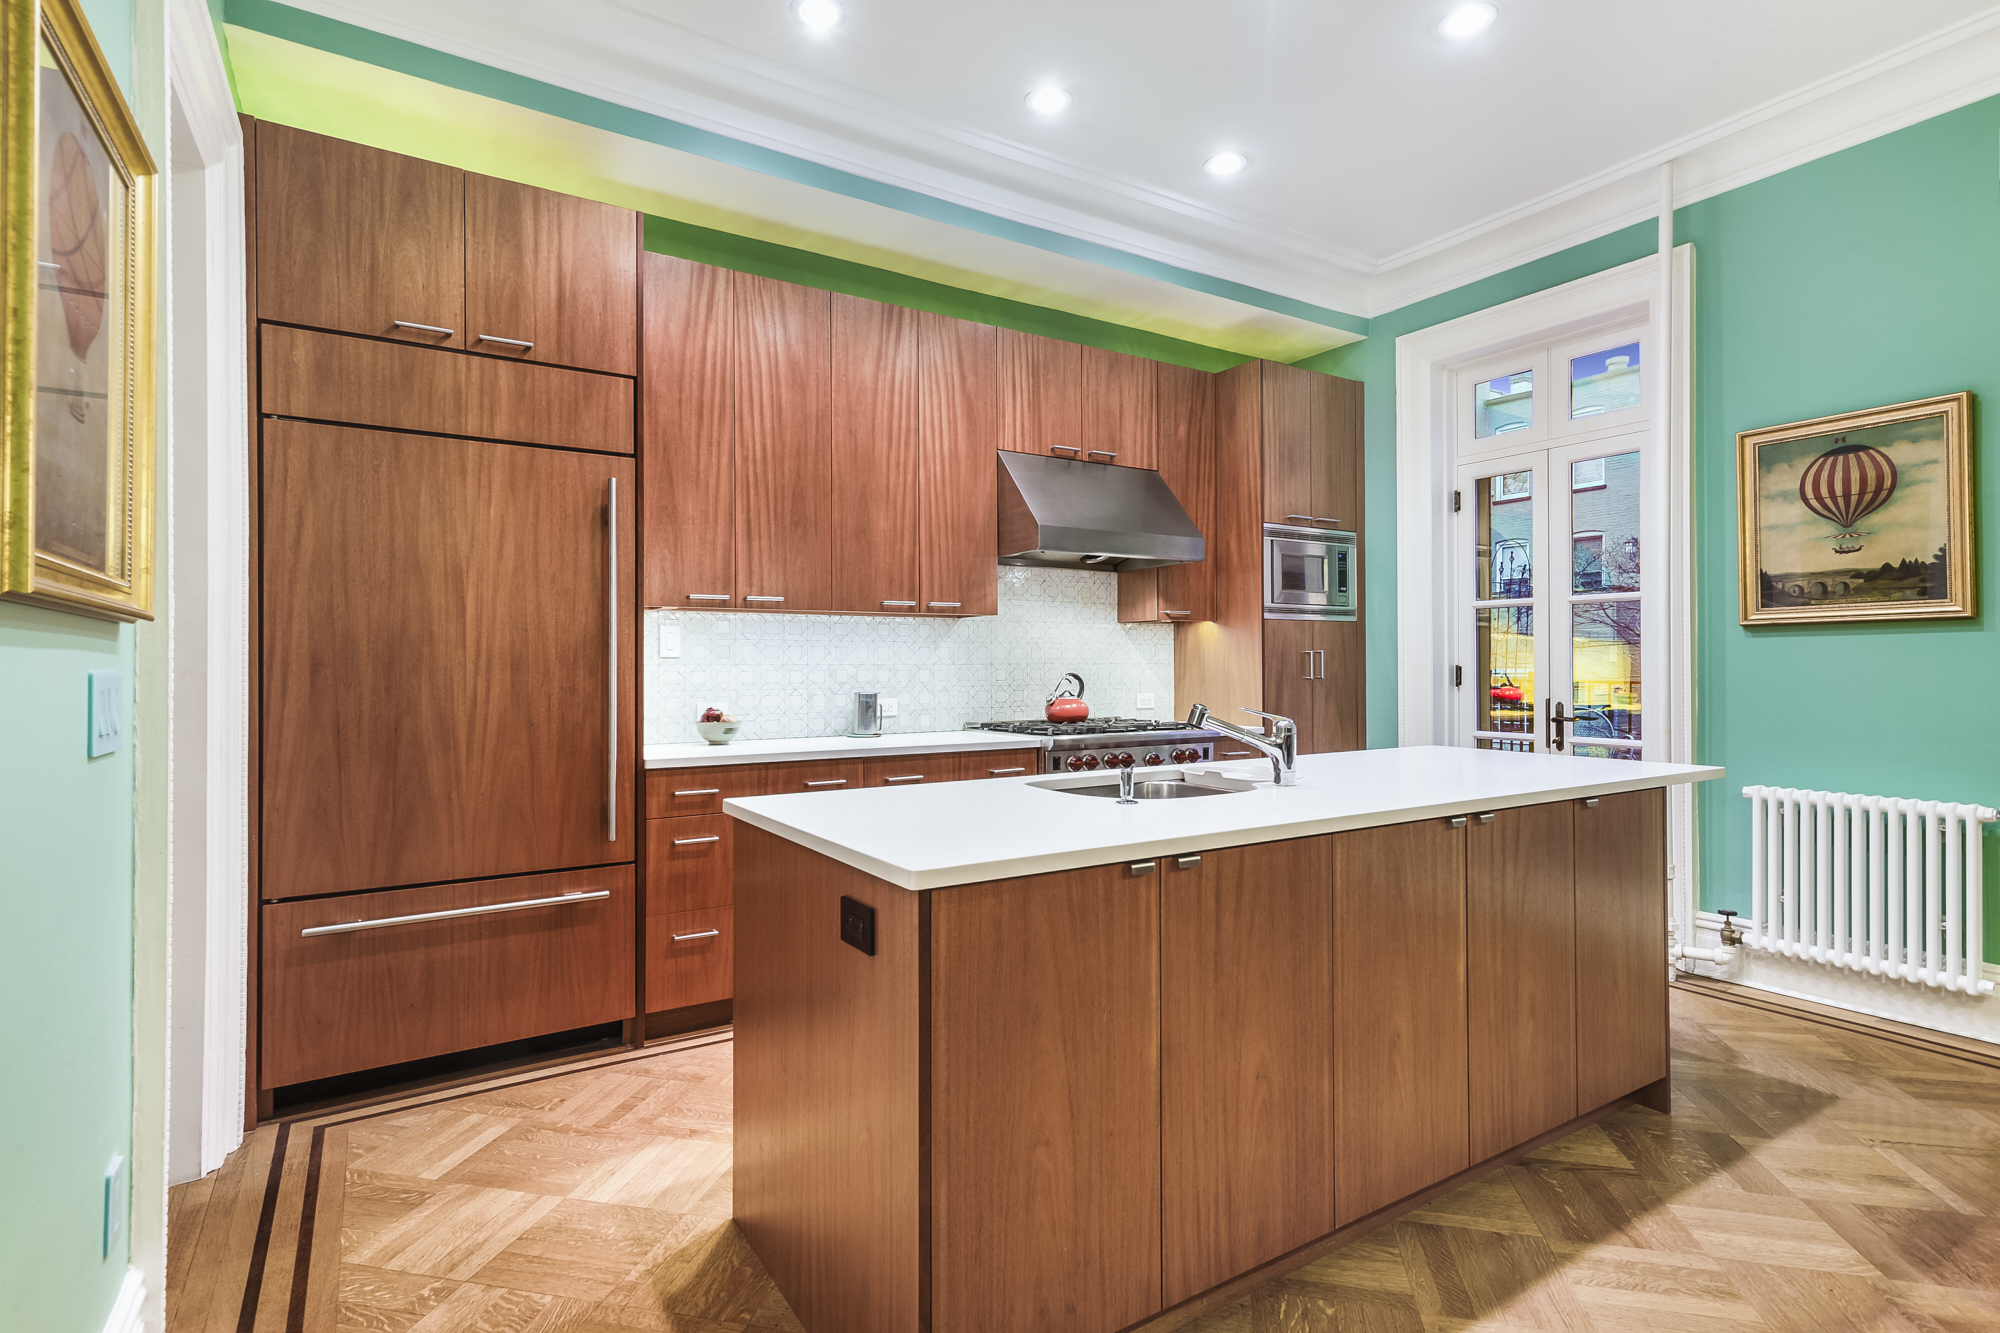 Located in - $3,700,000 - Park Slope